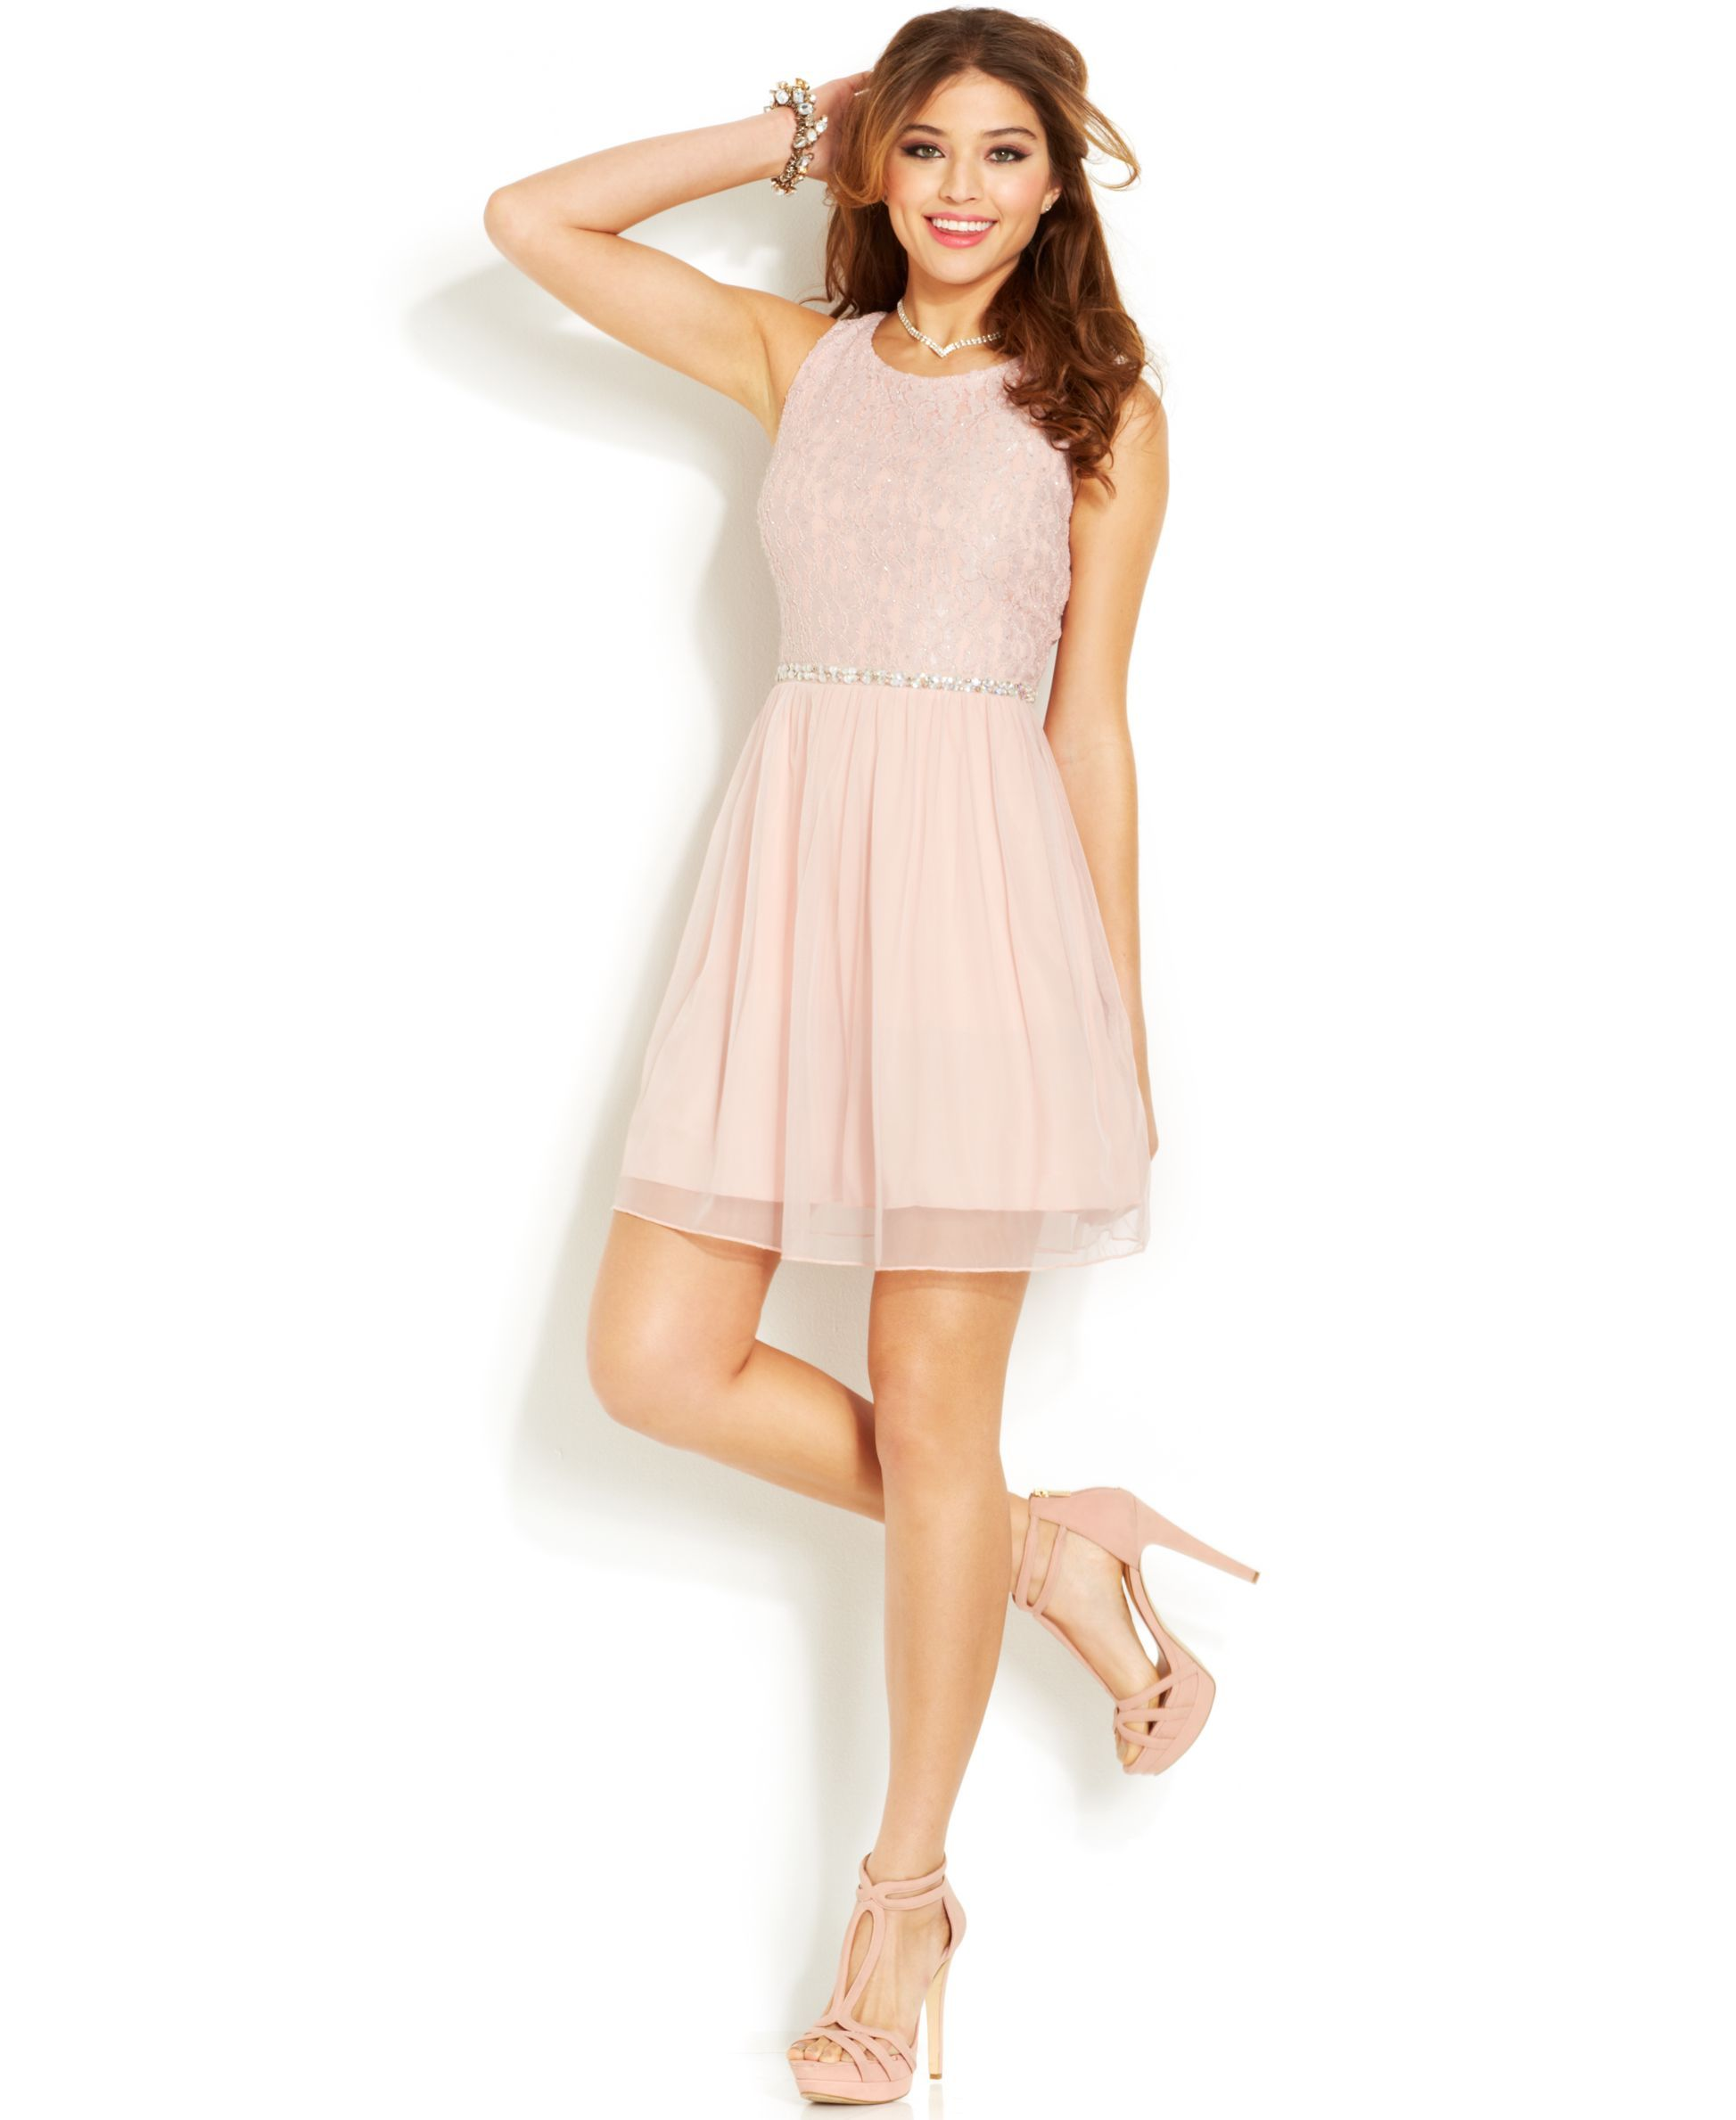 e38832e4a Speechless Juniors' A Line Dress - Juniors Homecoming Dresses - Macy's